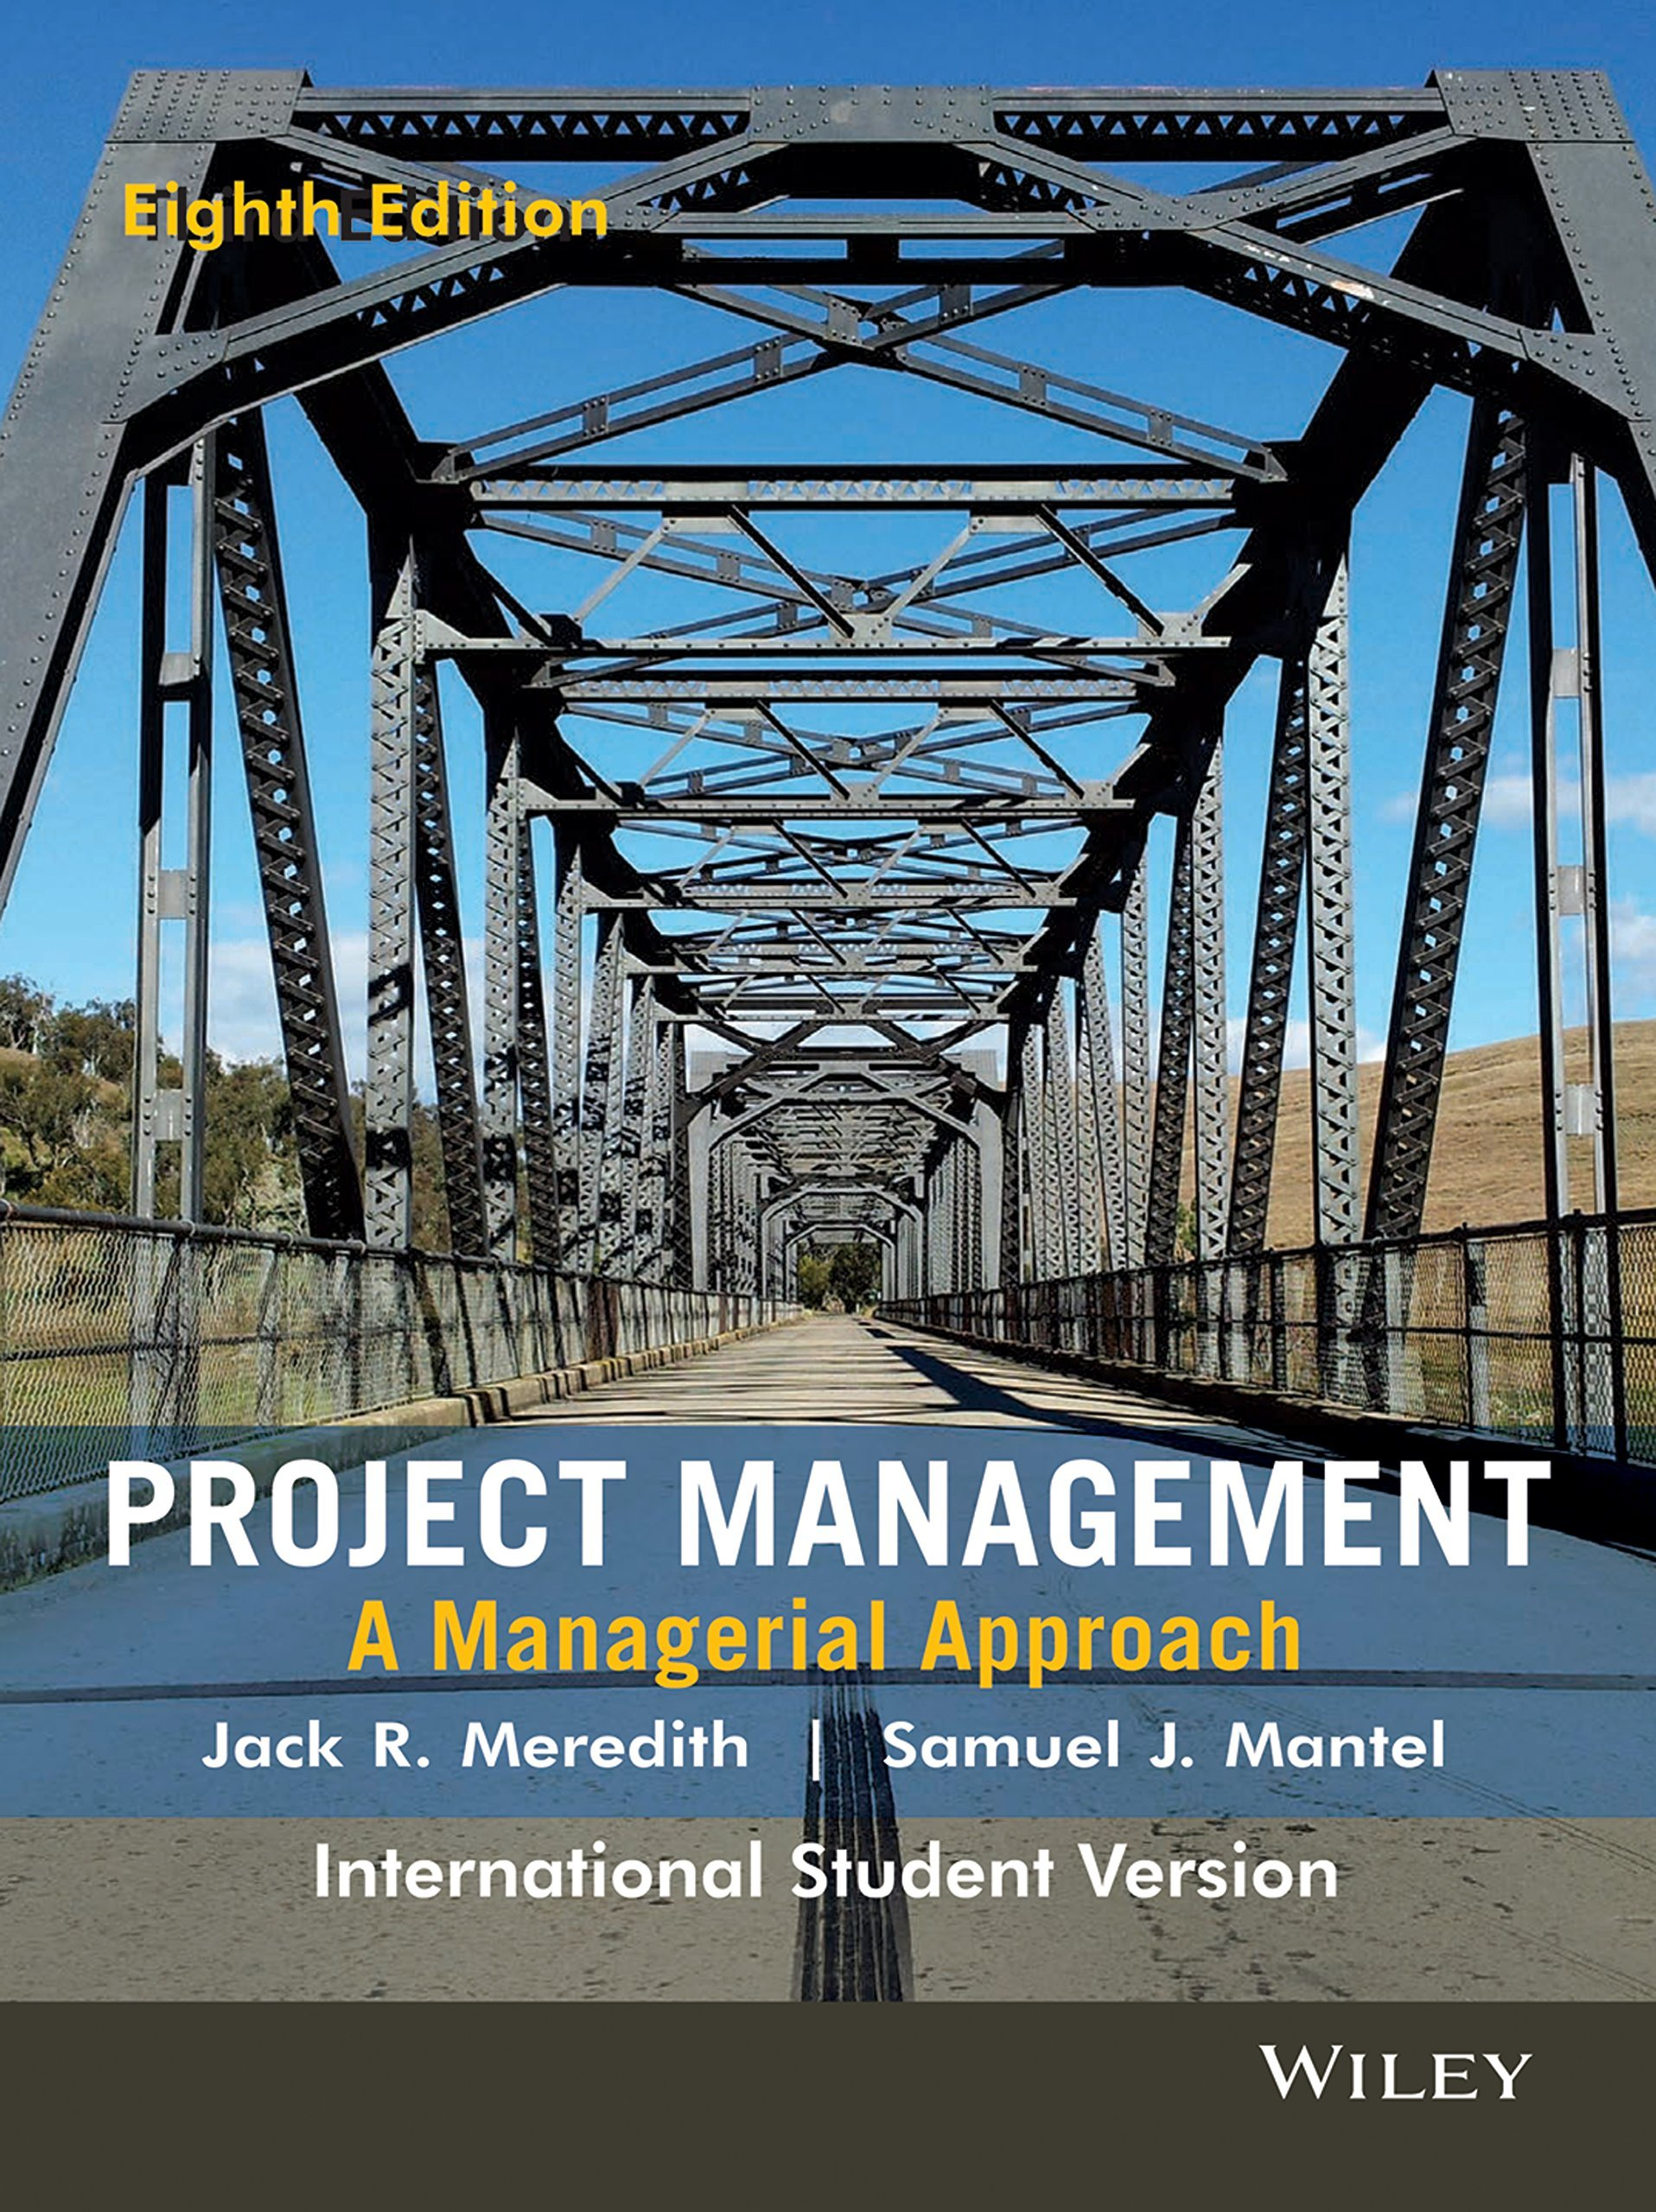 PROJECT MANAGEMENT: A MANAGERIAL APPROACH, 8TH ED, ISV by SAMUEL J. MANTEL JACK  R. MEREDITH (4-Jul-1905) Paperback: Amazon.com: Books